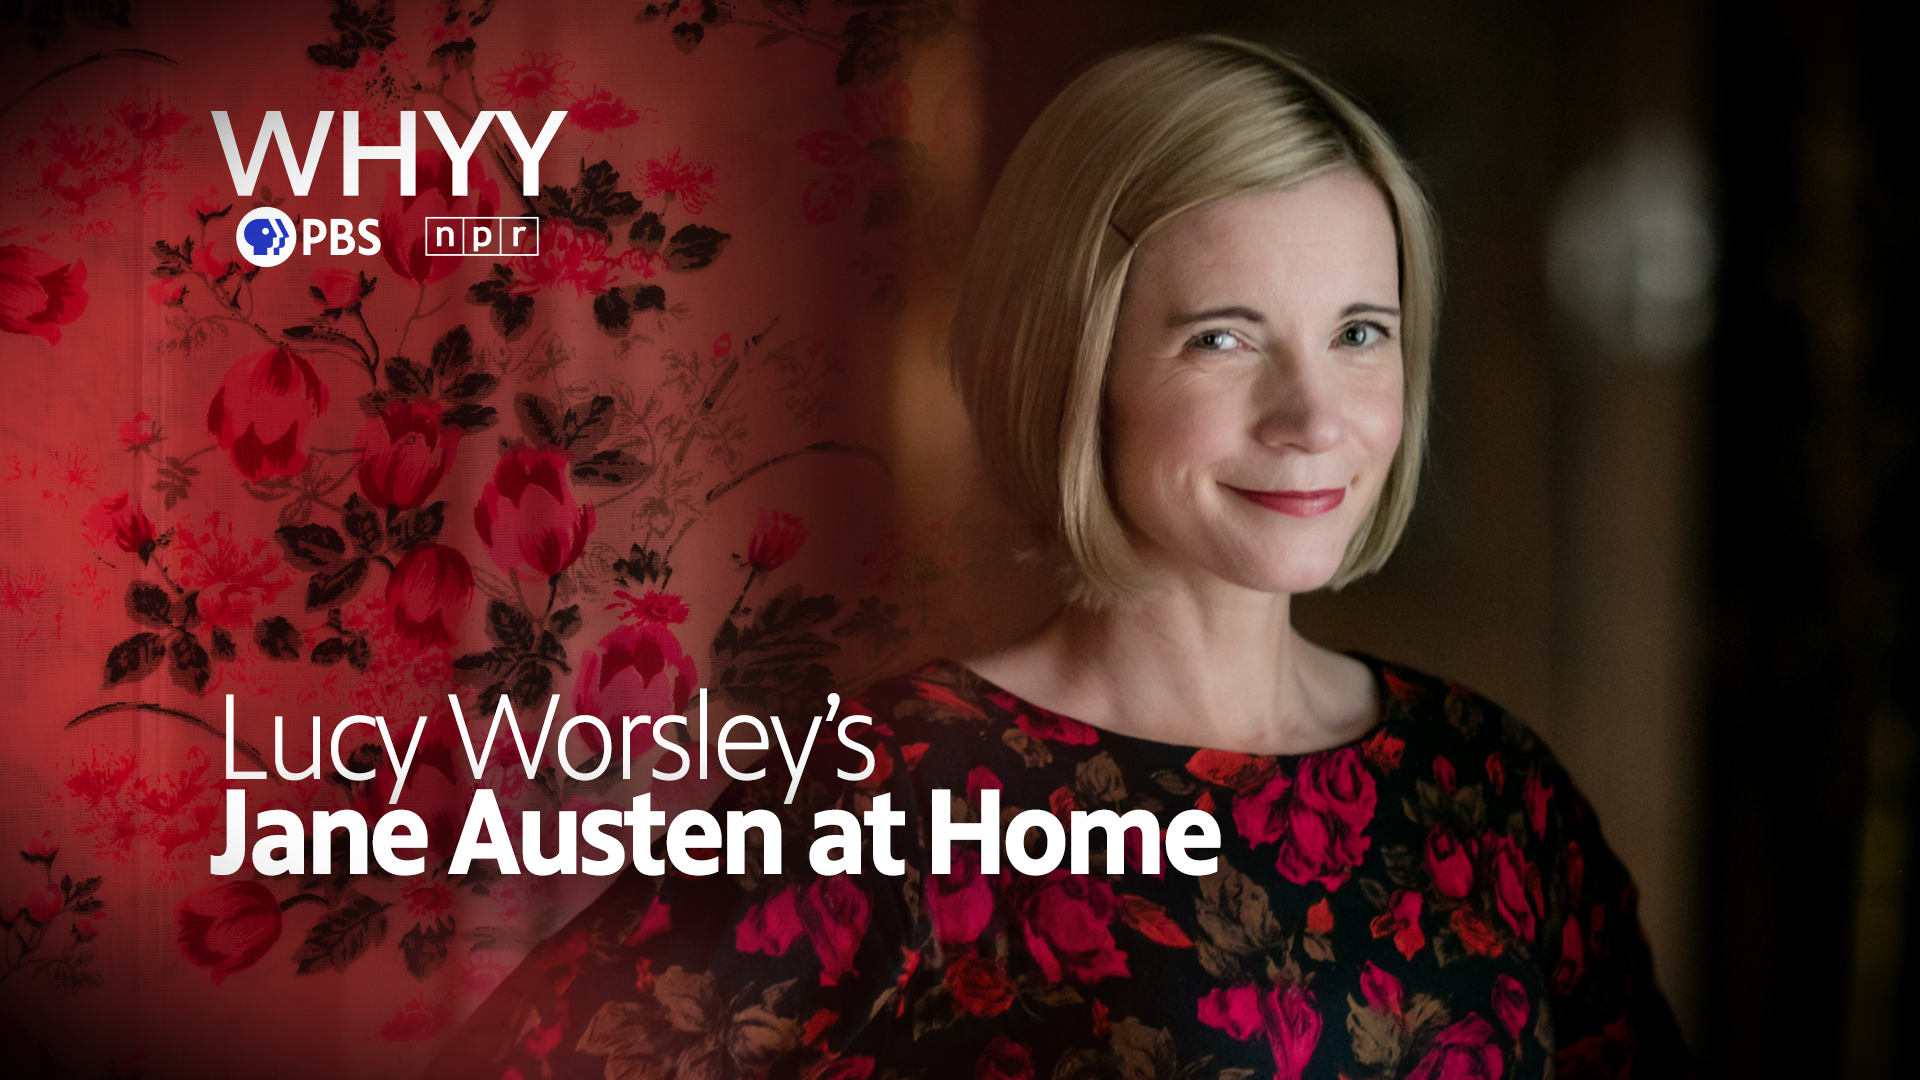 Lucy Worsley's Jane Austen at Home